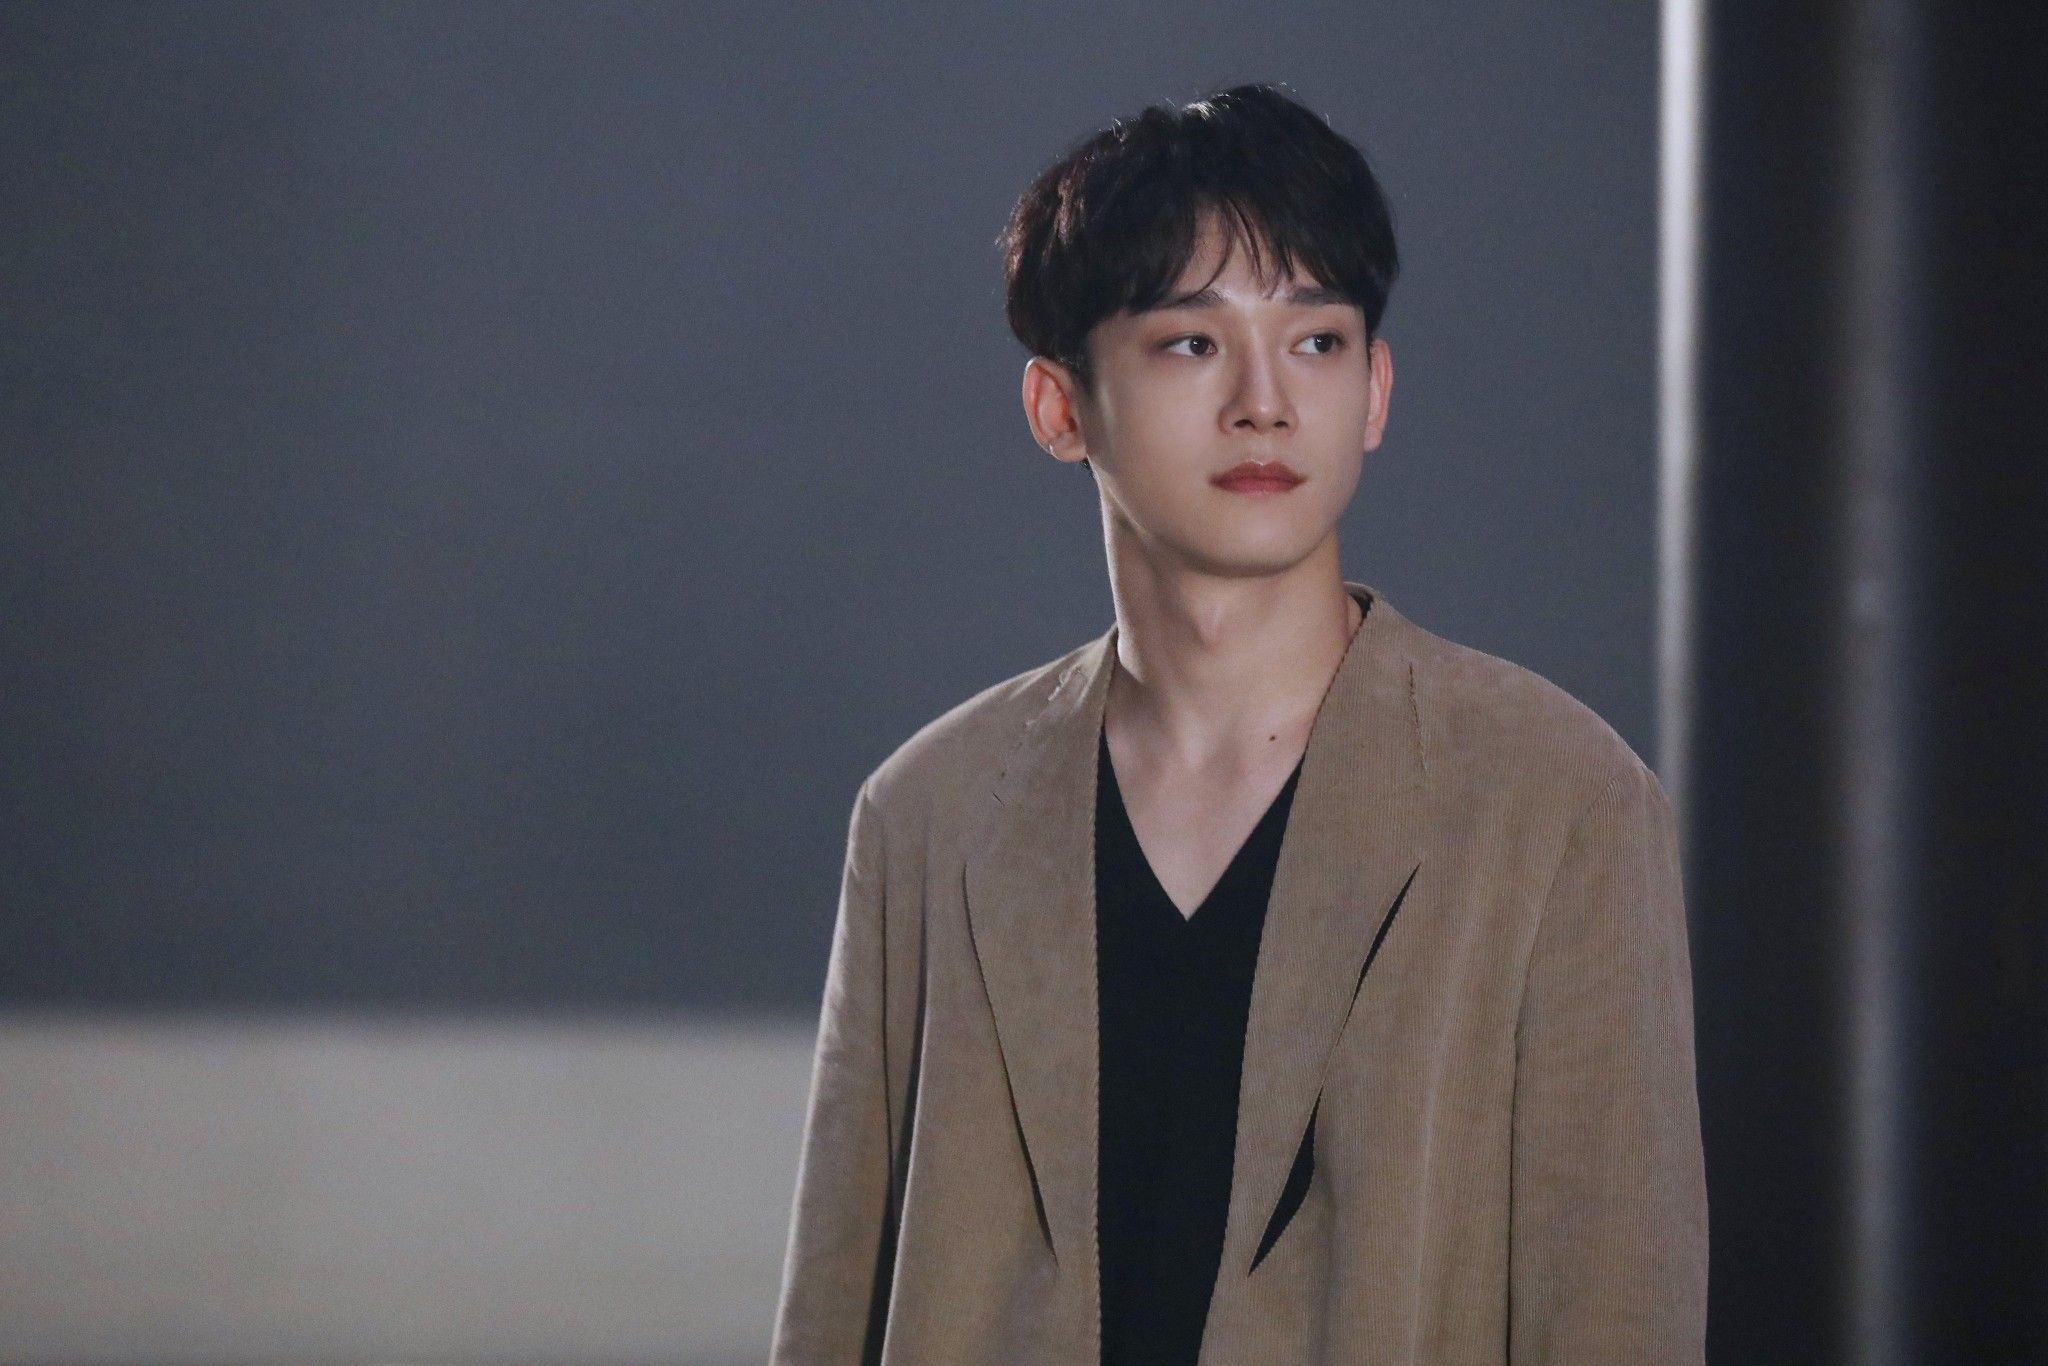 Chen Behind The Scenes of Shall We? MV